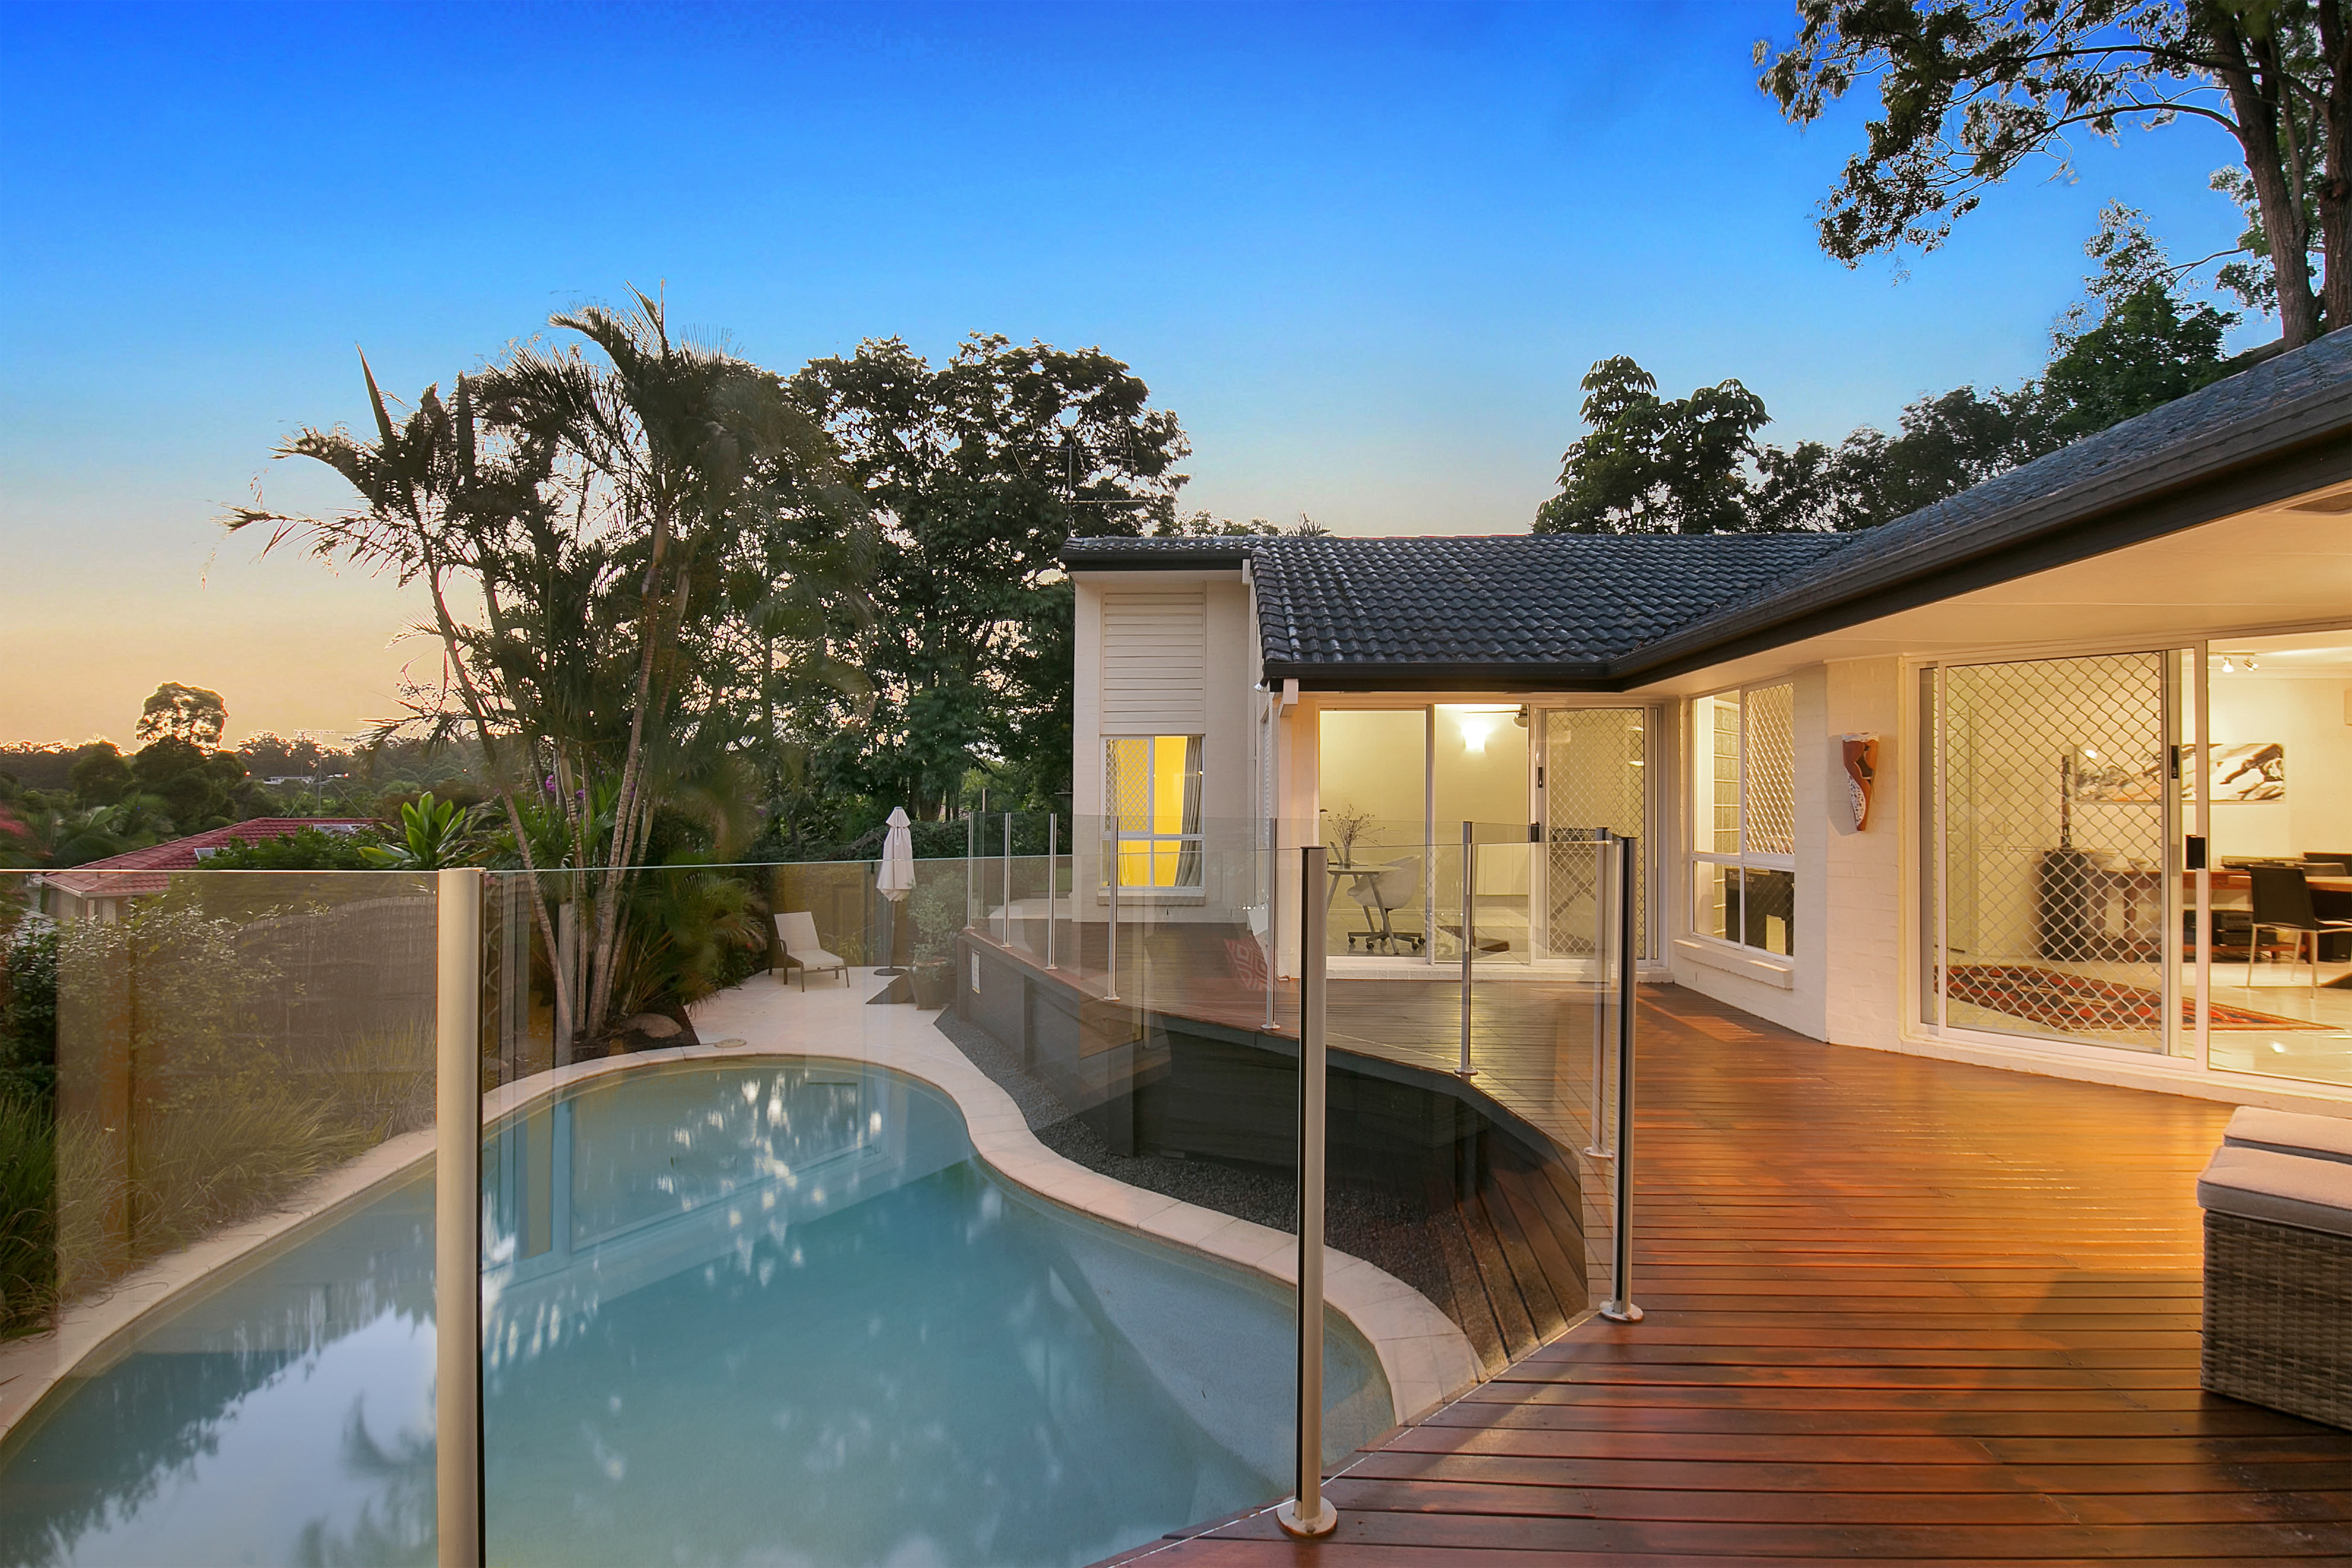 12 Ringway Place, Chapel Hill pool